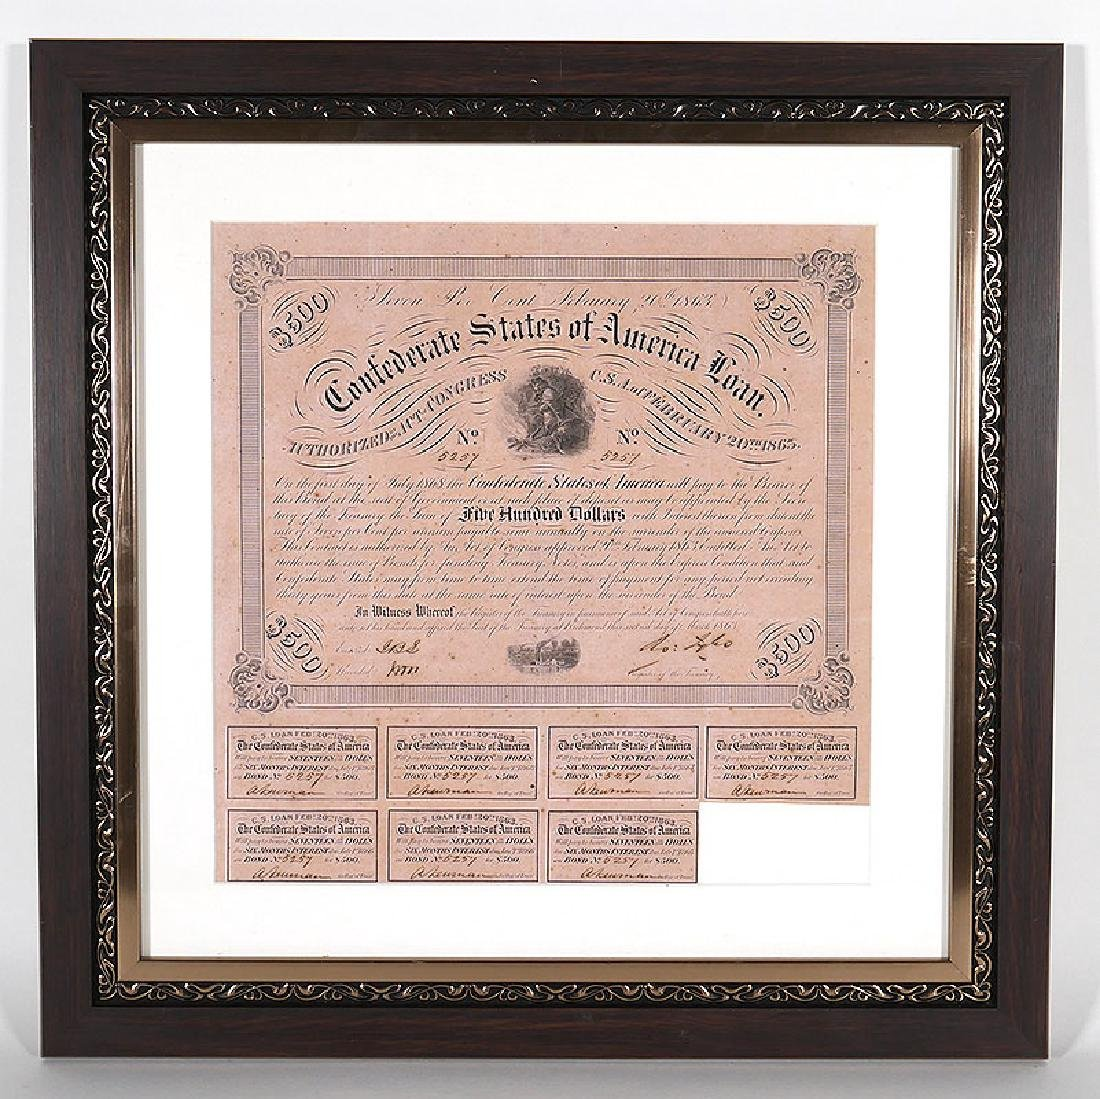 1863 Confederate States $500 Loan with Coupons